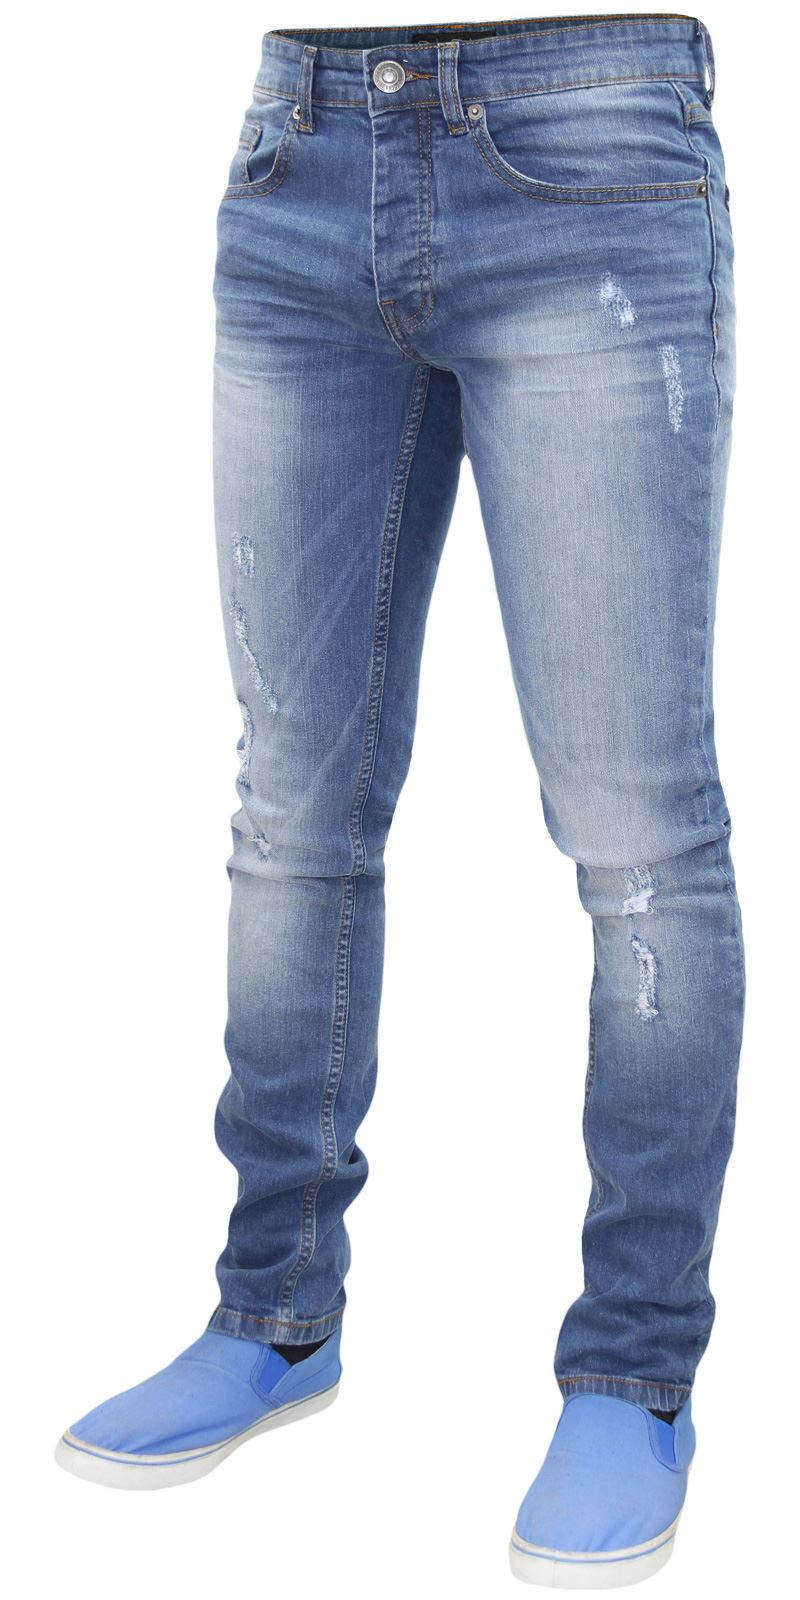 Mens-Skinny-Stretch-Ripped-Jeans-Slim-Fit-Casual-Trousers-Denim-Pants-All-Sizes thumbnail 18